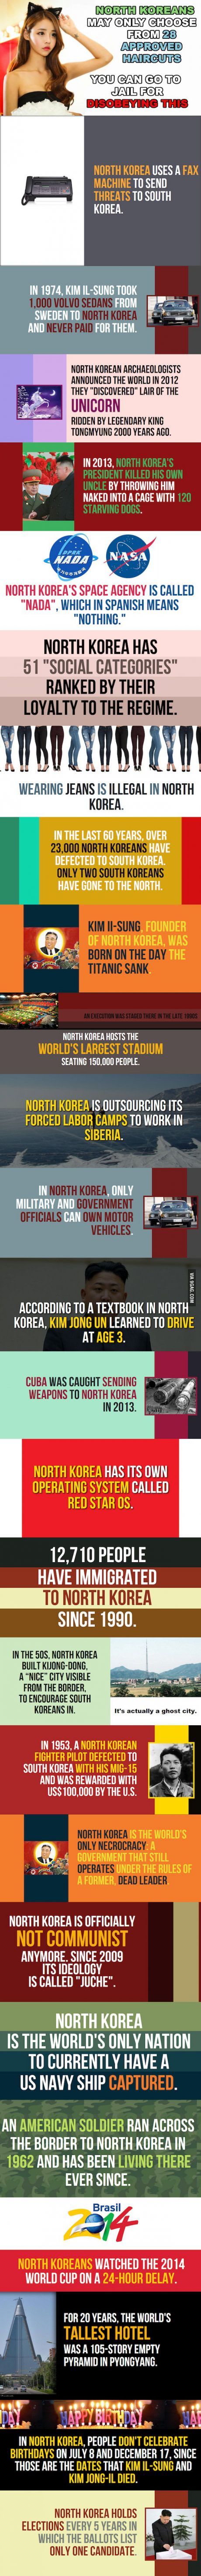 Here's some fun facts about North